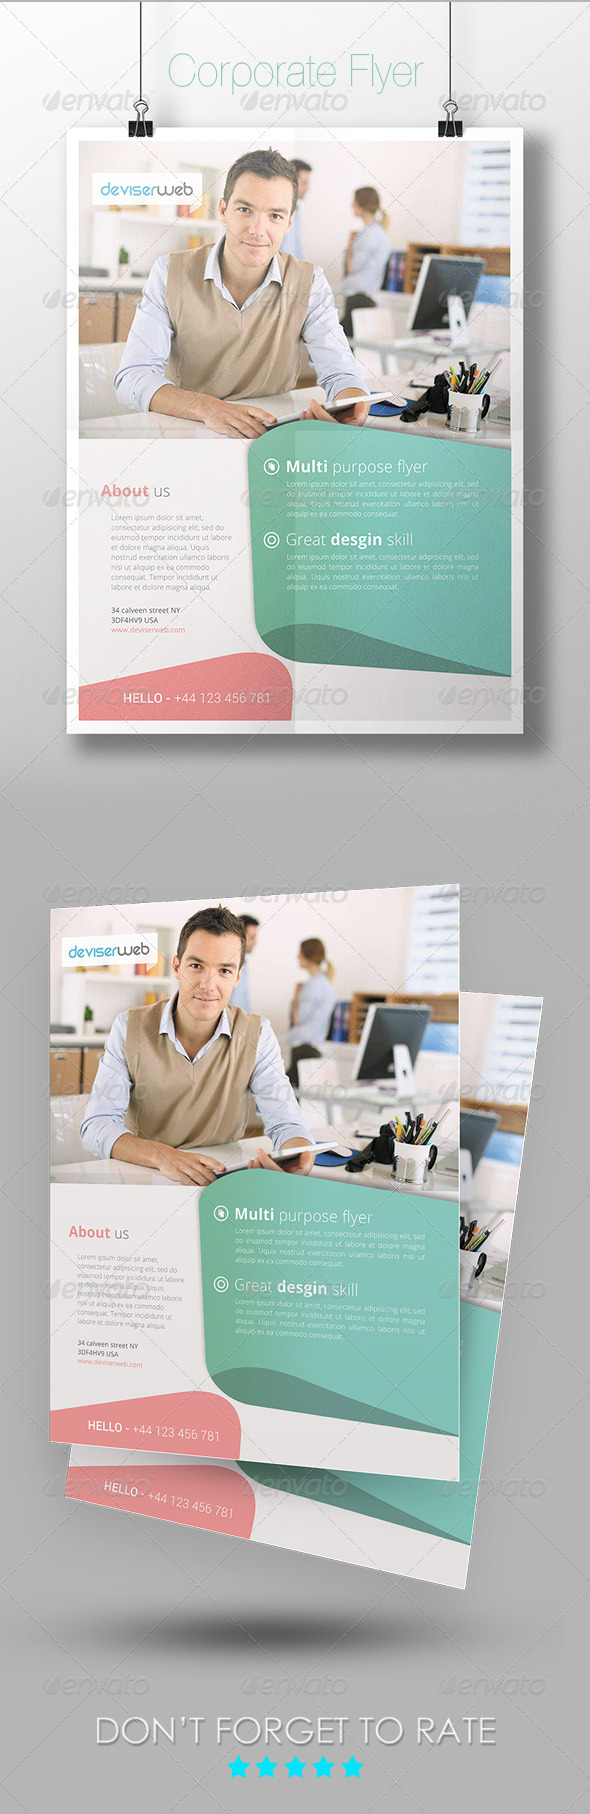 GraphicRiver Corporate Flyer Template 7285367